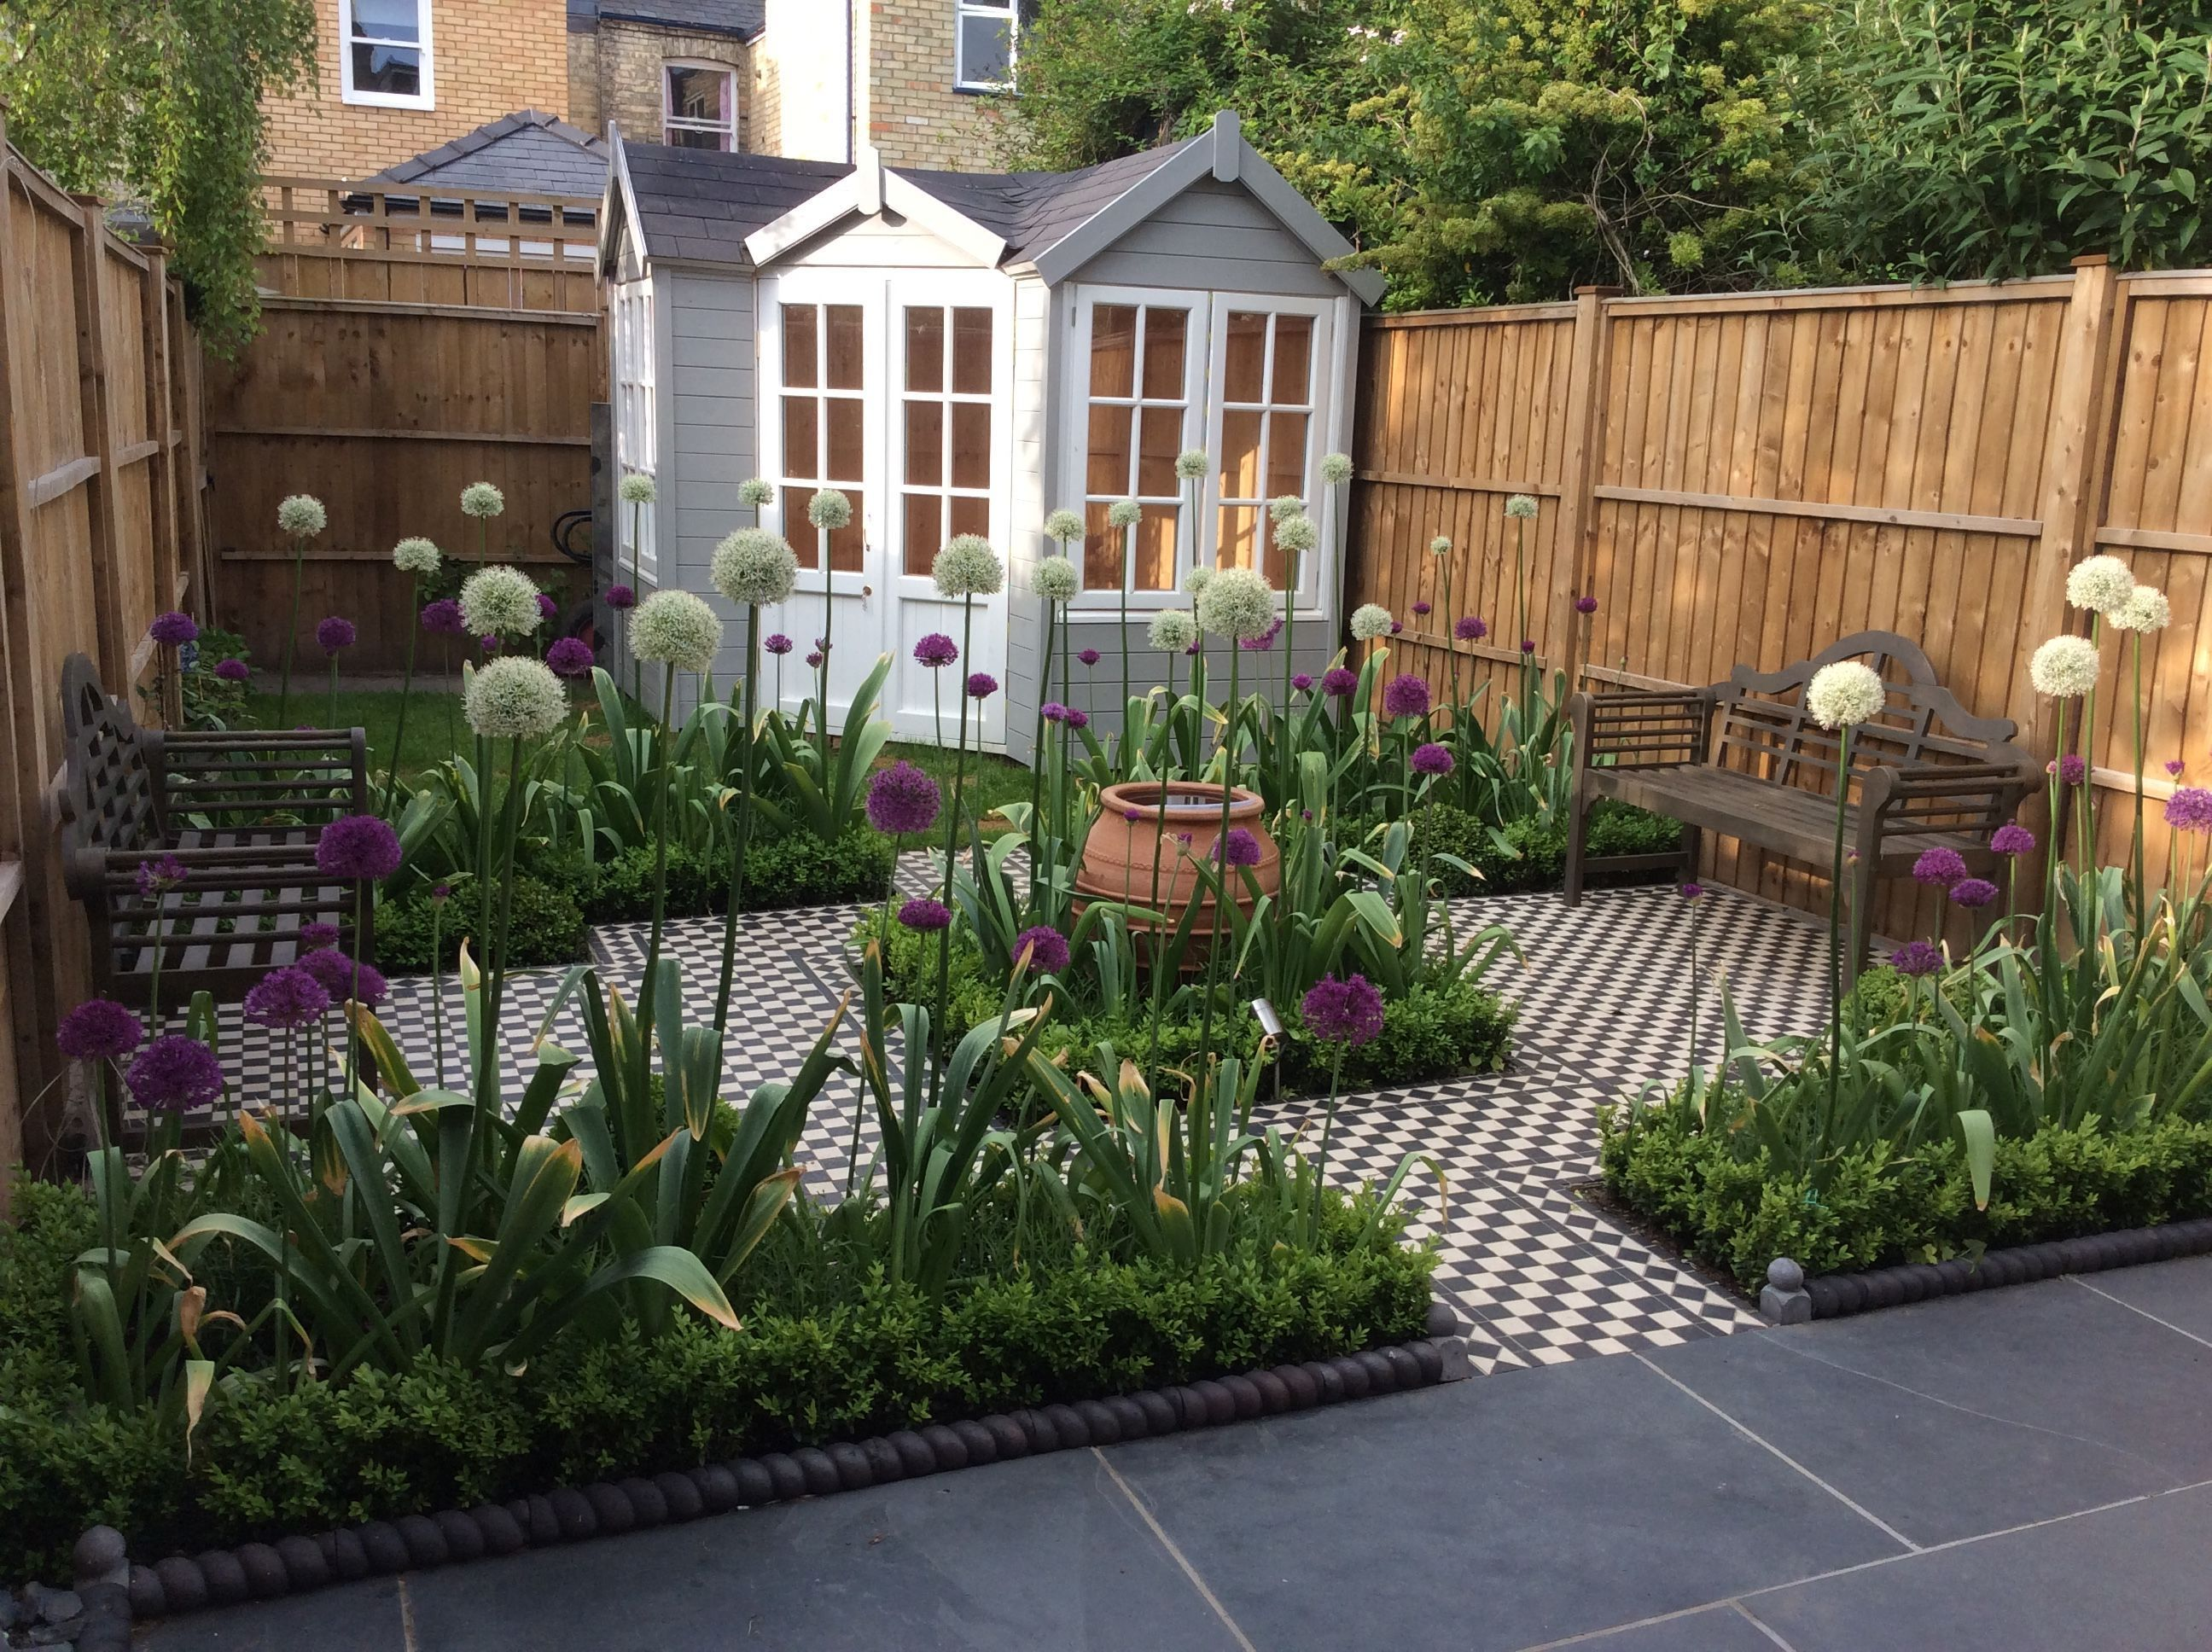 Small Back Garden Of Victorian Terraced House Even If The Topography Of Your Backyard Snakes Into Small Back Gardens Townhouse Garden Terraced House Garden